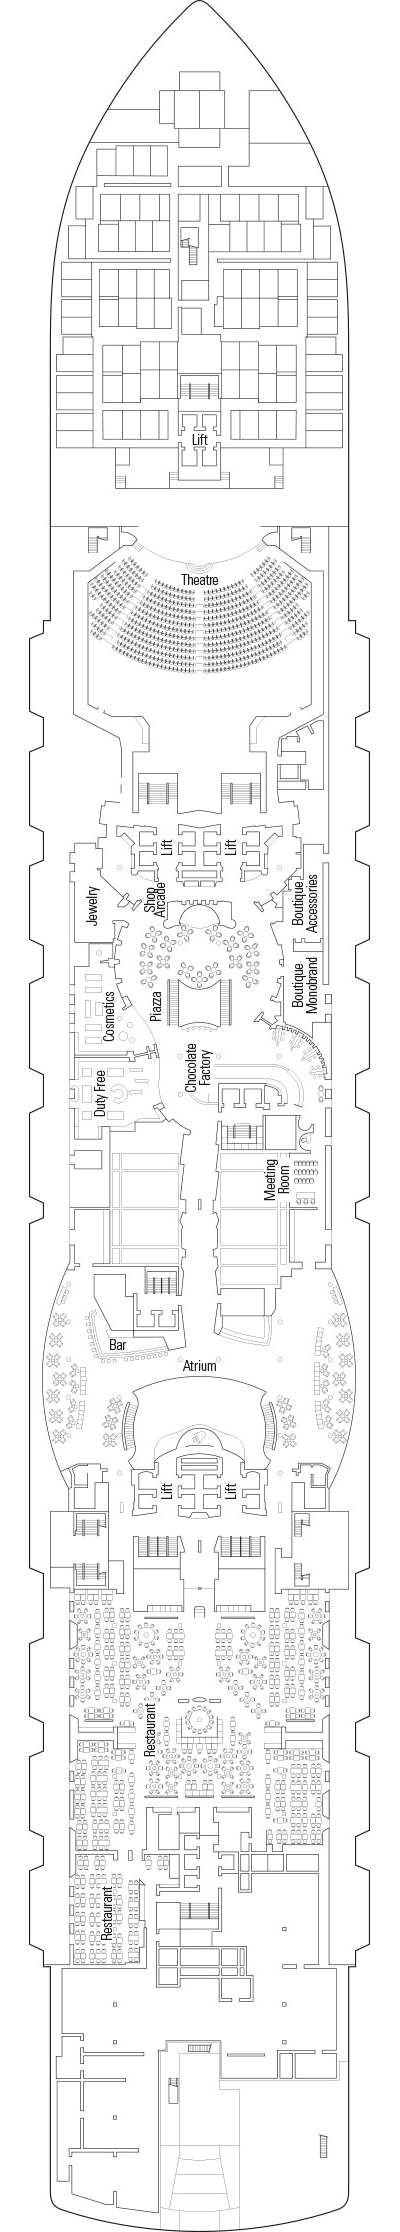 MSC Seaview Deck 6 layout